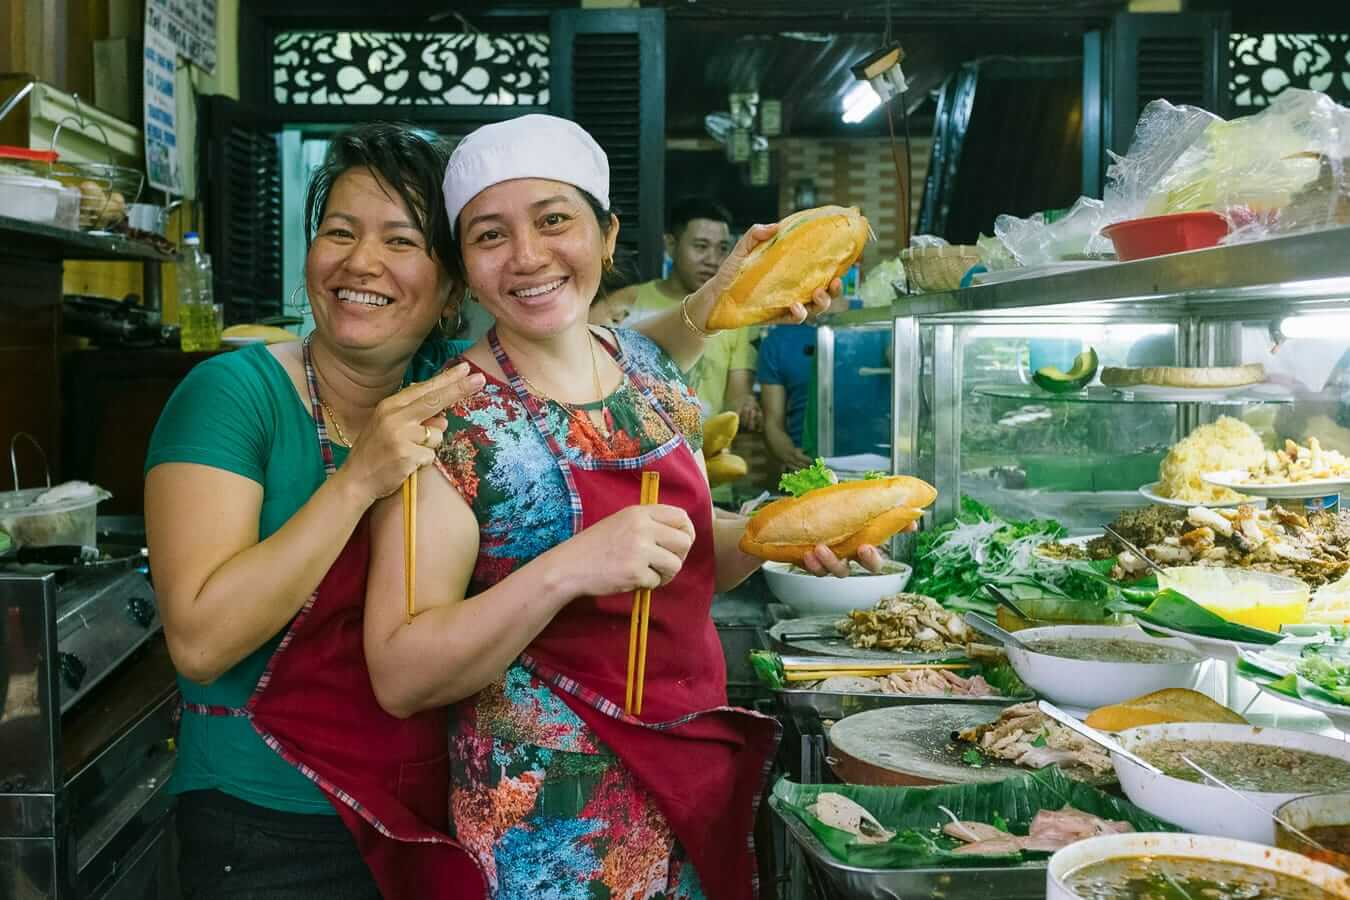 Banh Mi Phuong: 3-day itinerary in Hoi An